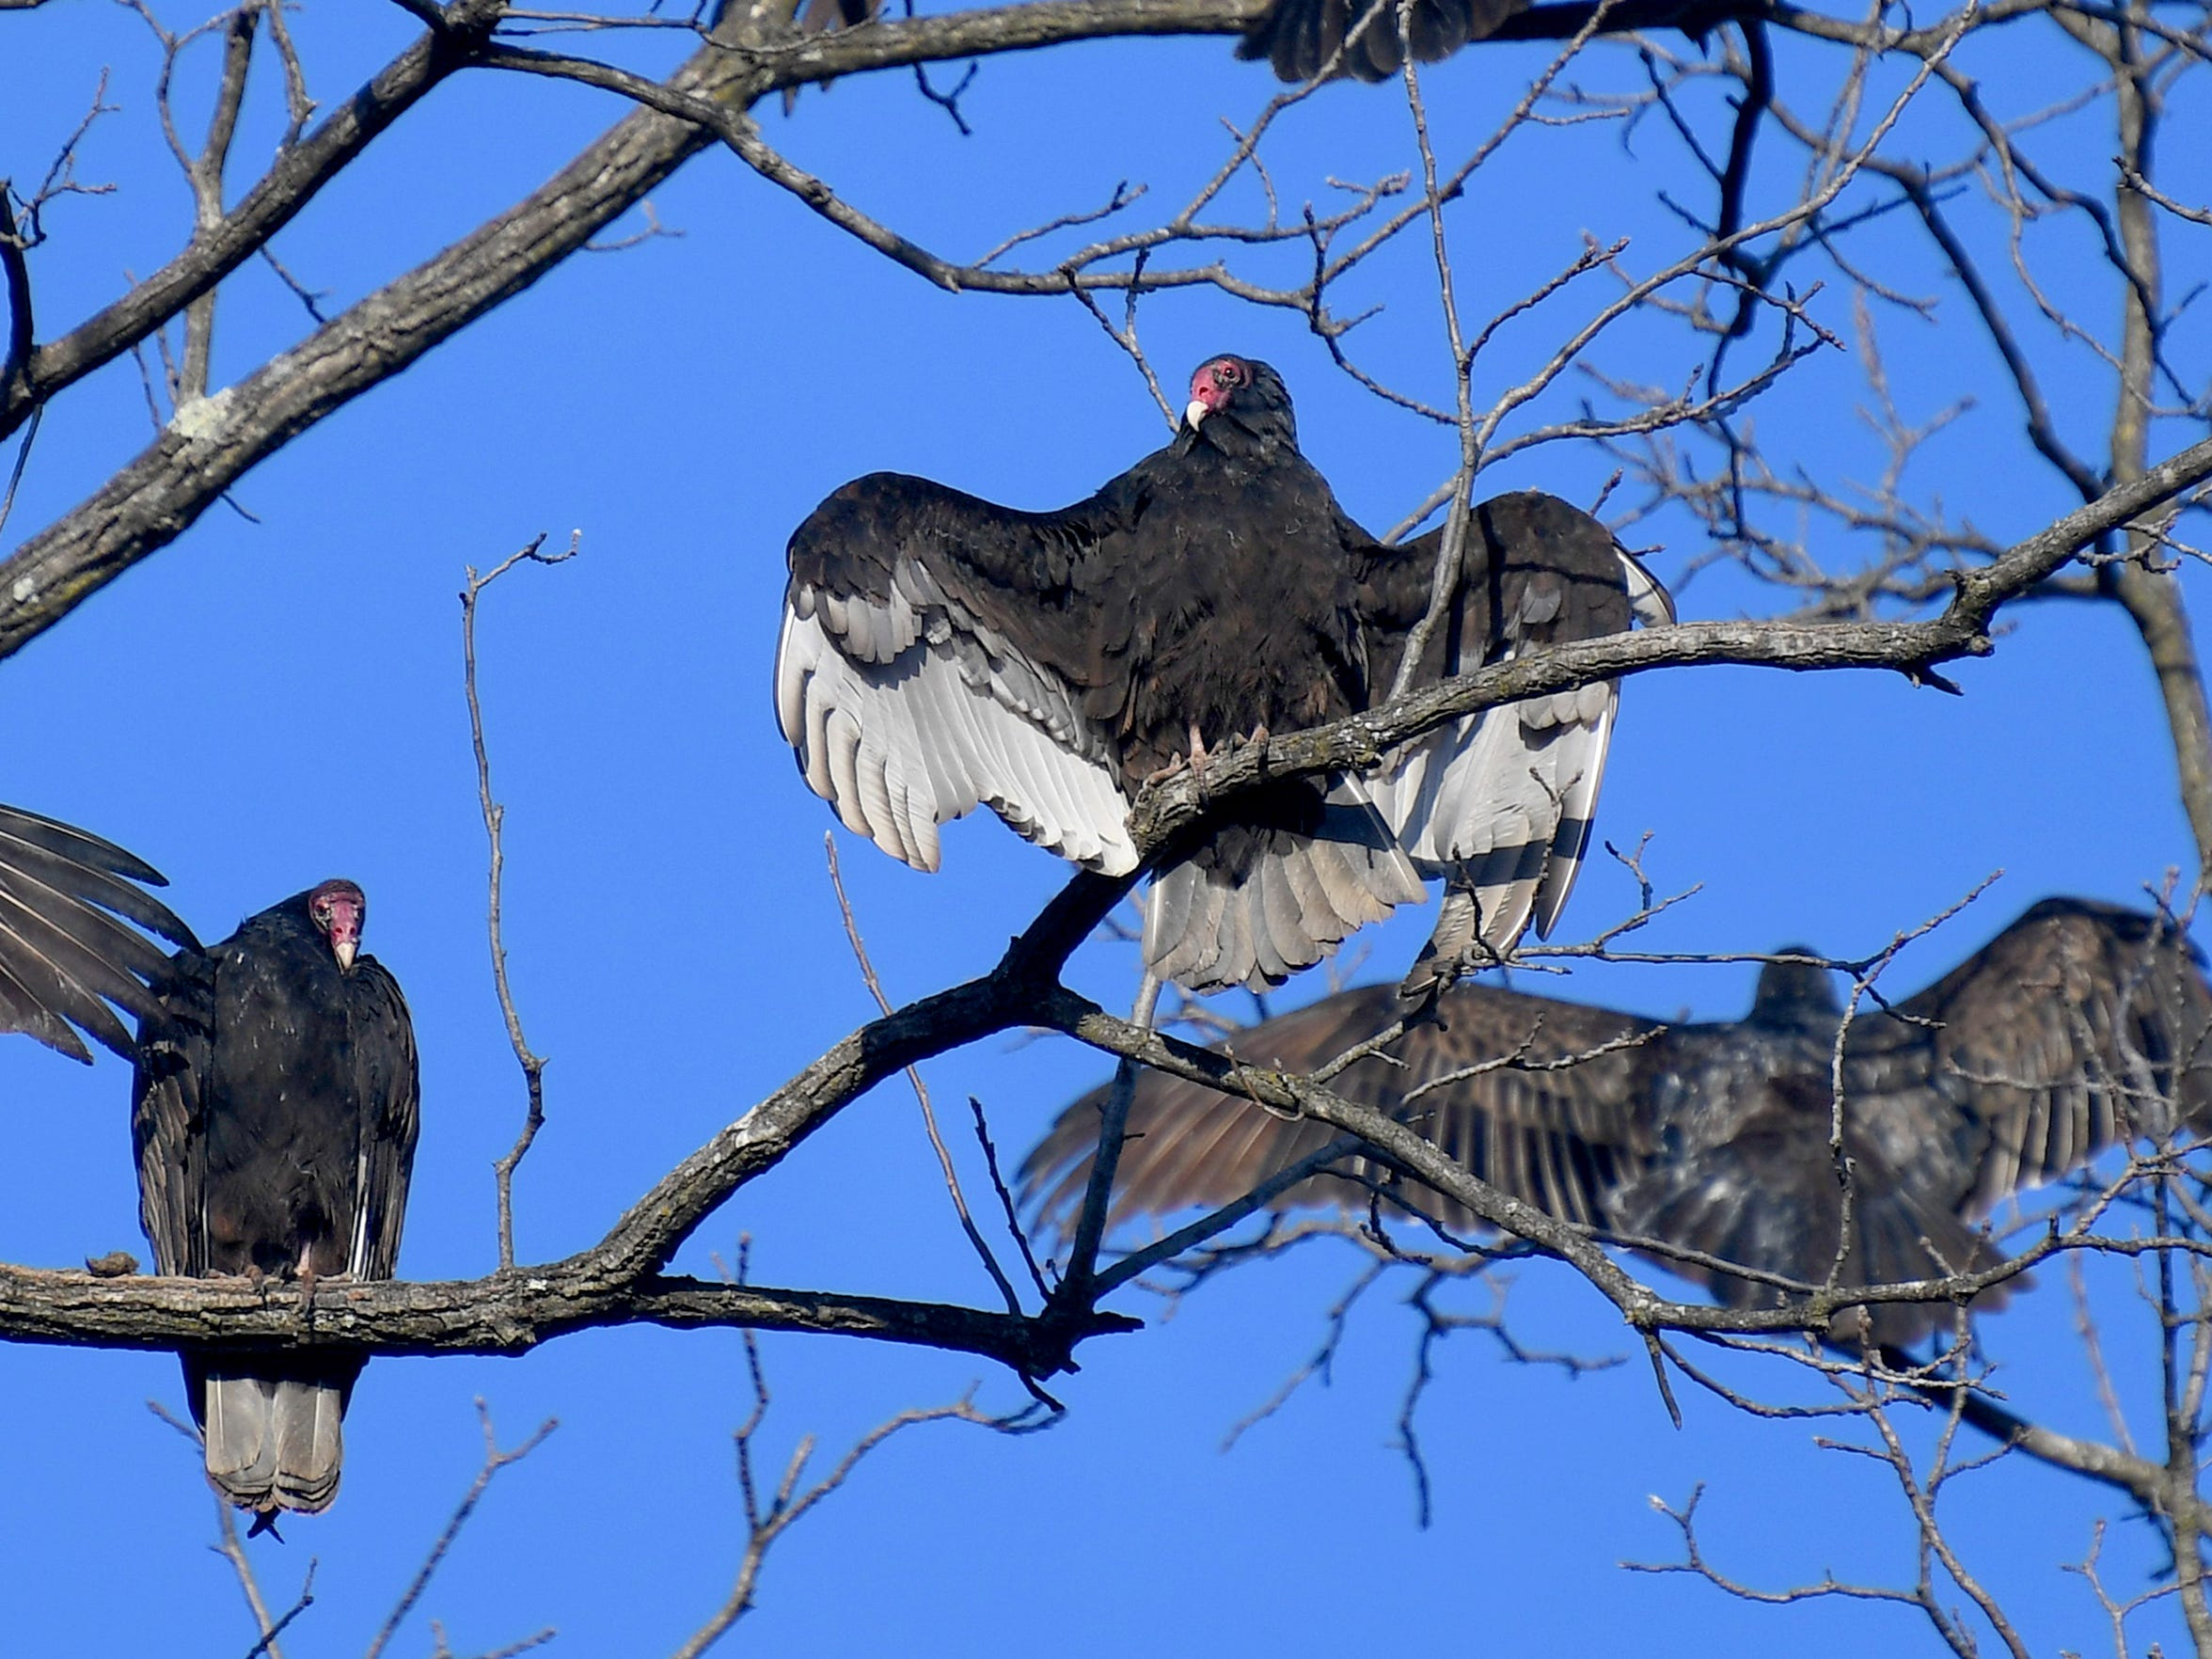 A turkey vulture spreads its wings in the warmth of the morning sun while roosting in a tree with others, visible from Fillmore Street in Staunton on Thursday morning, Dec. 19, 2018.